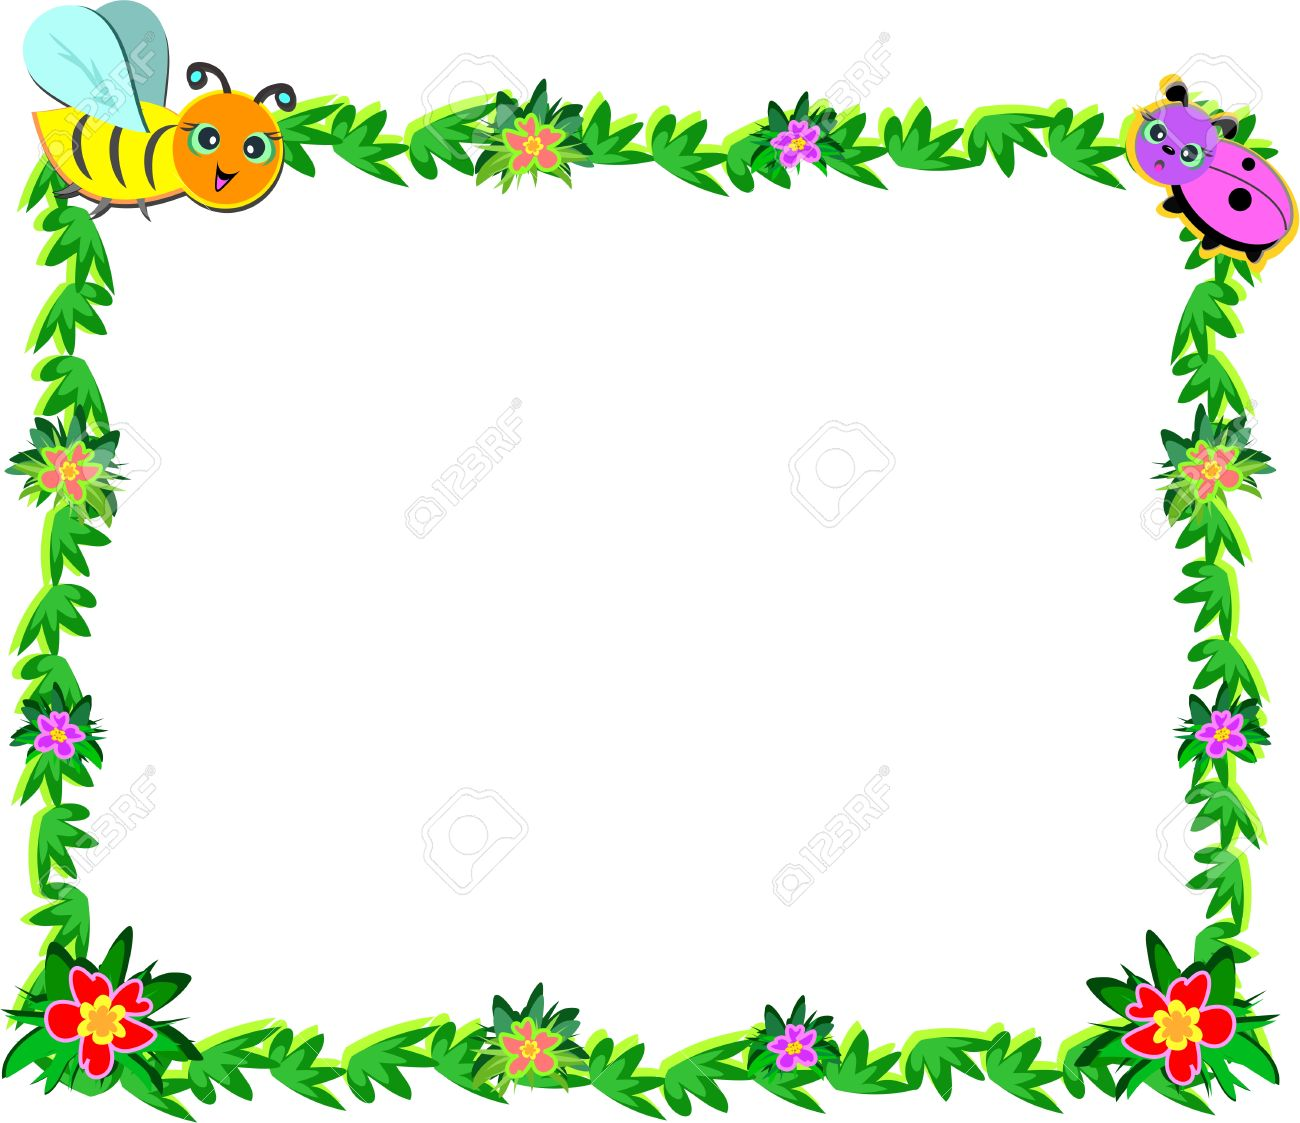 Frame of Bee, Ladybug, Vines, and Flowers.